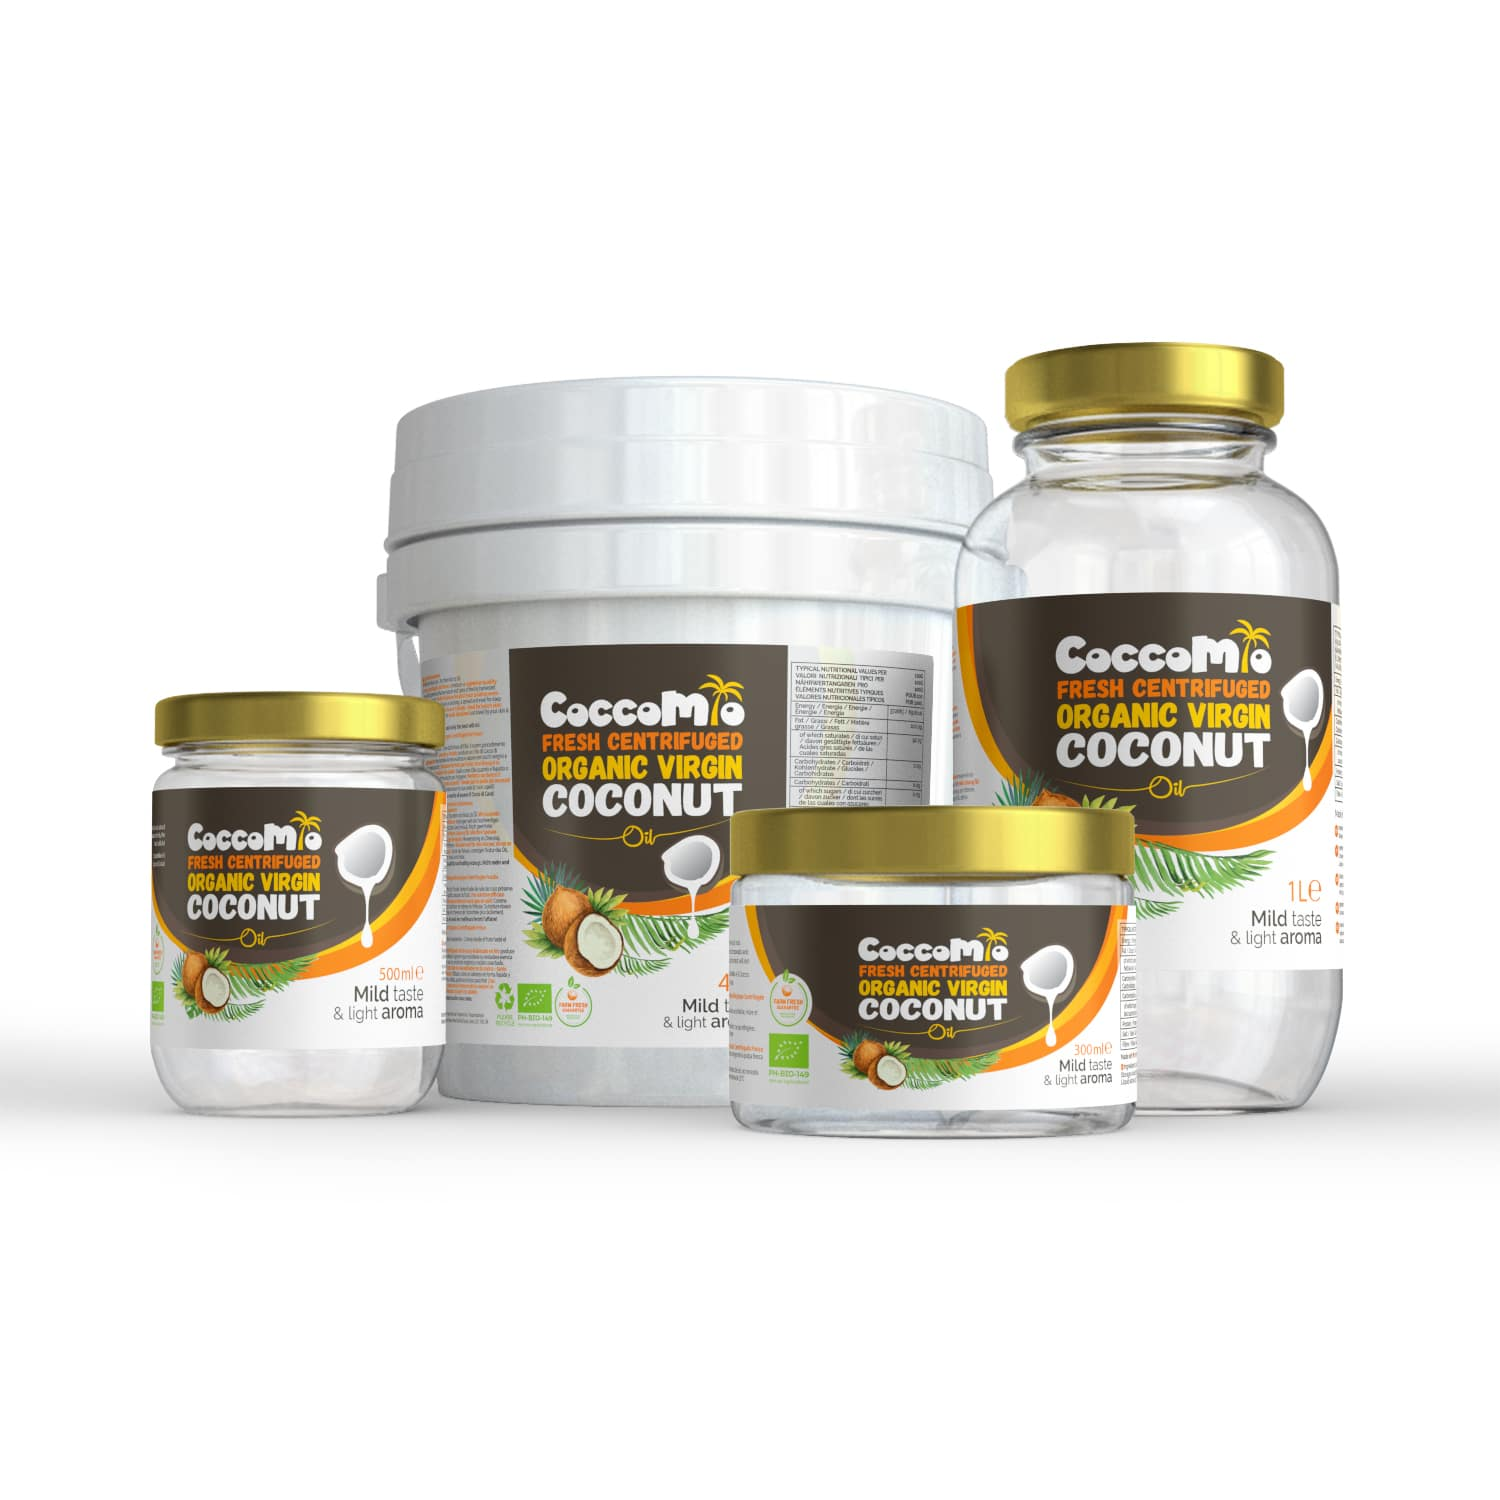 CoccoMio Fresh Centrifuged Organic Virgin Coconut Oil Products